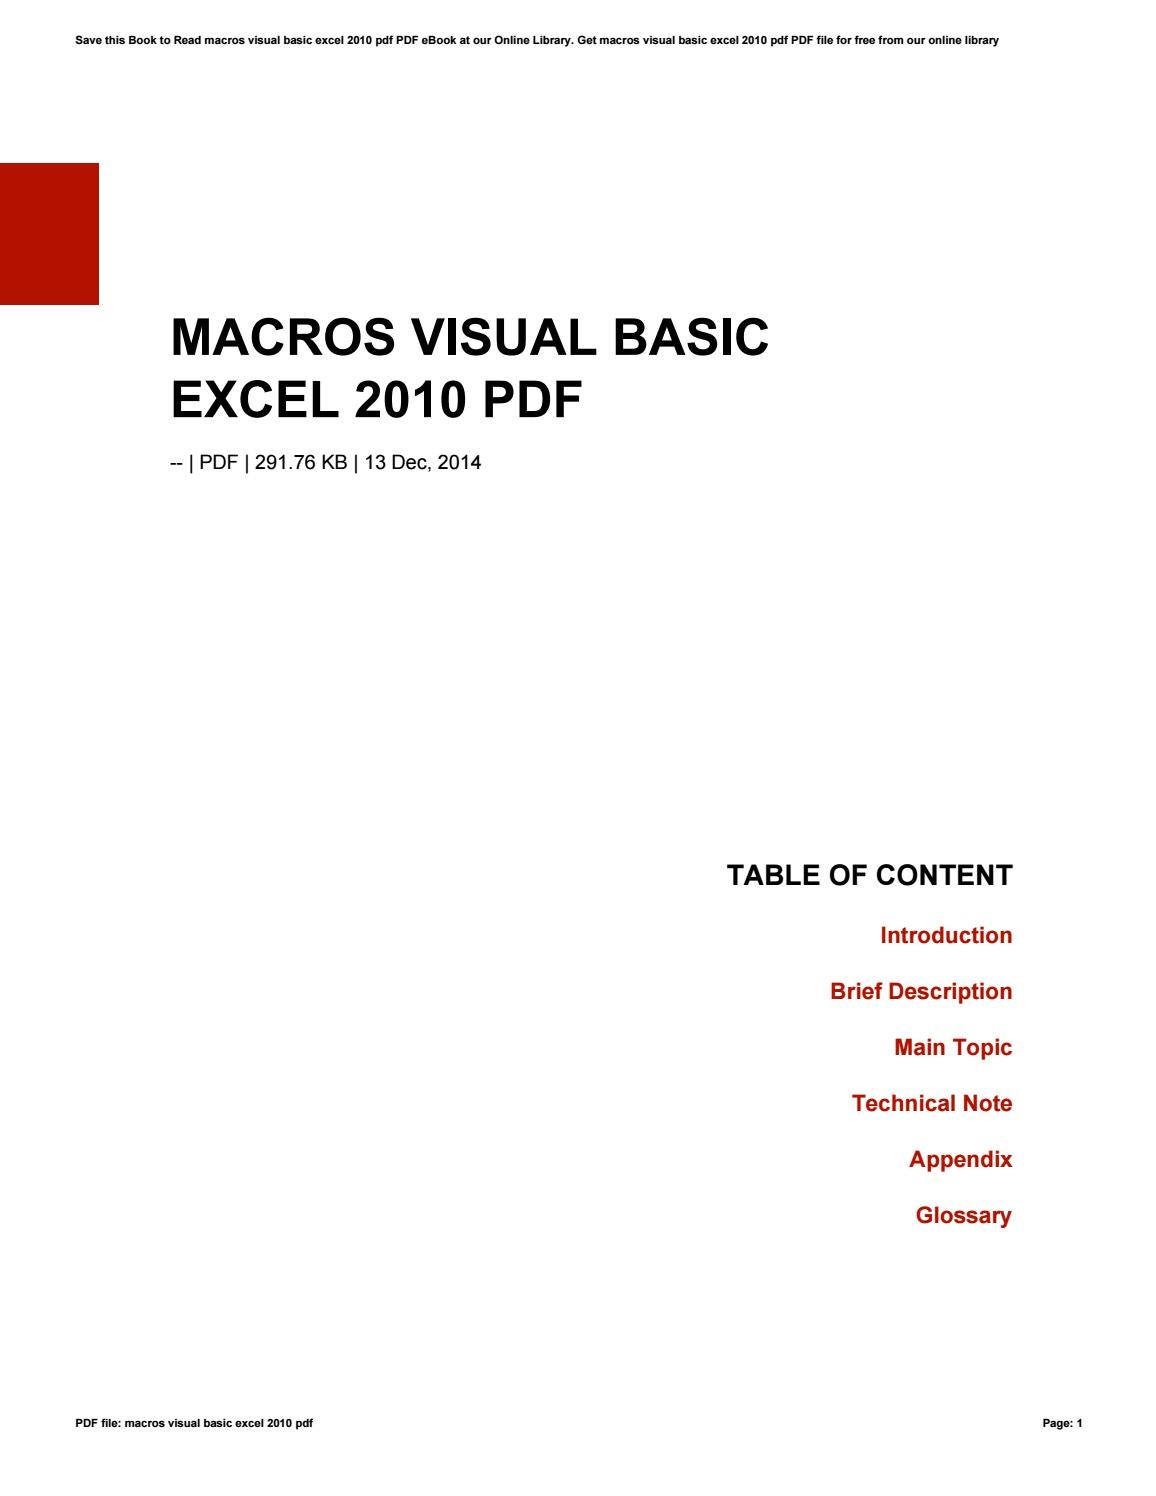 Macros visual basic excel 2010 pdf by JamesProcopio3398 - issuu